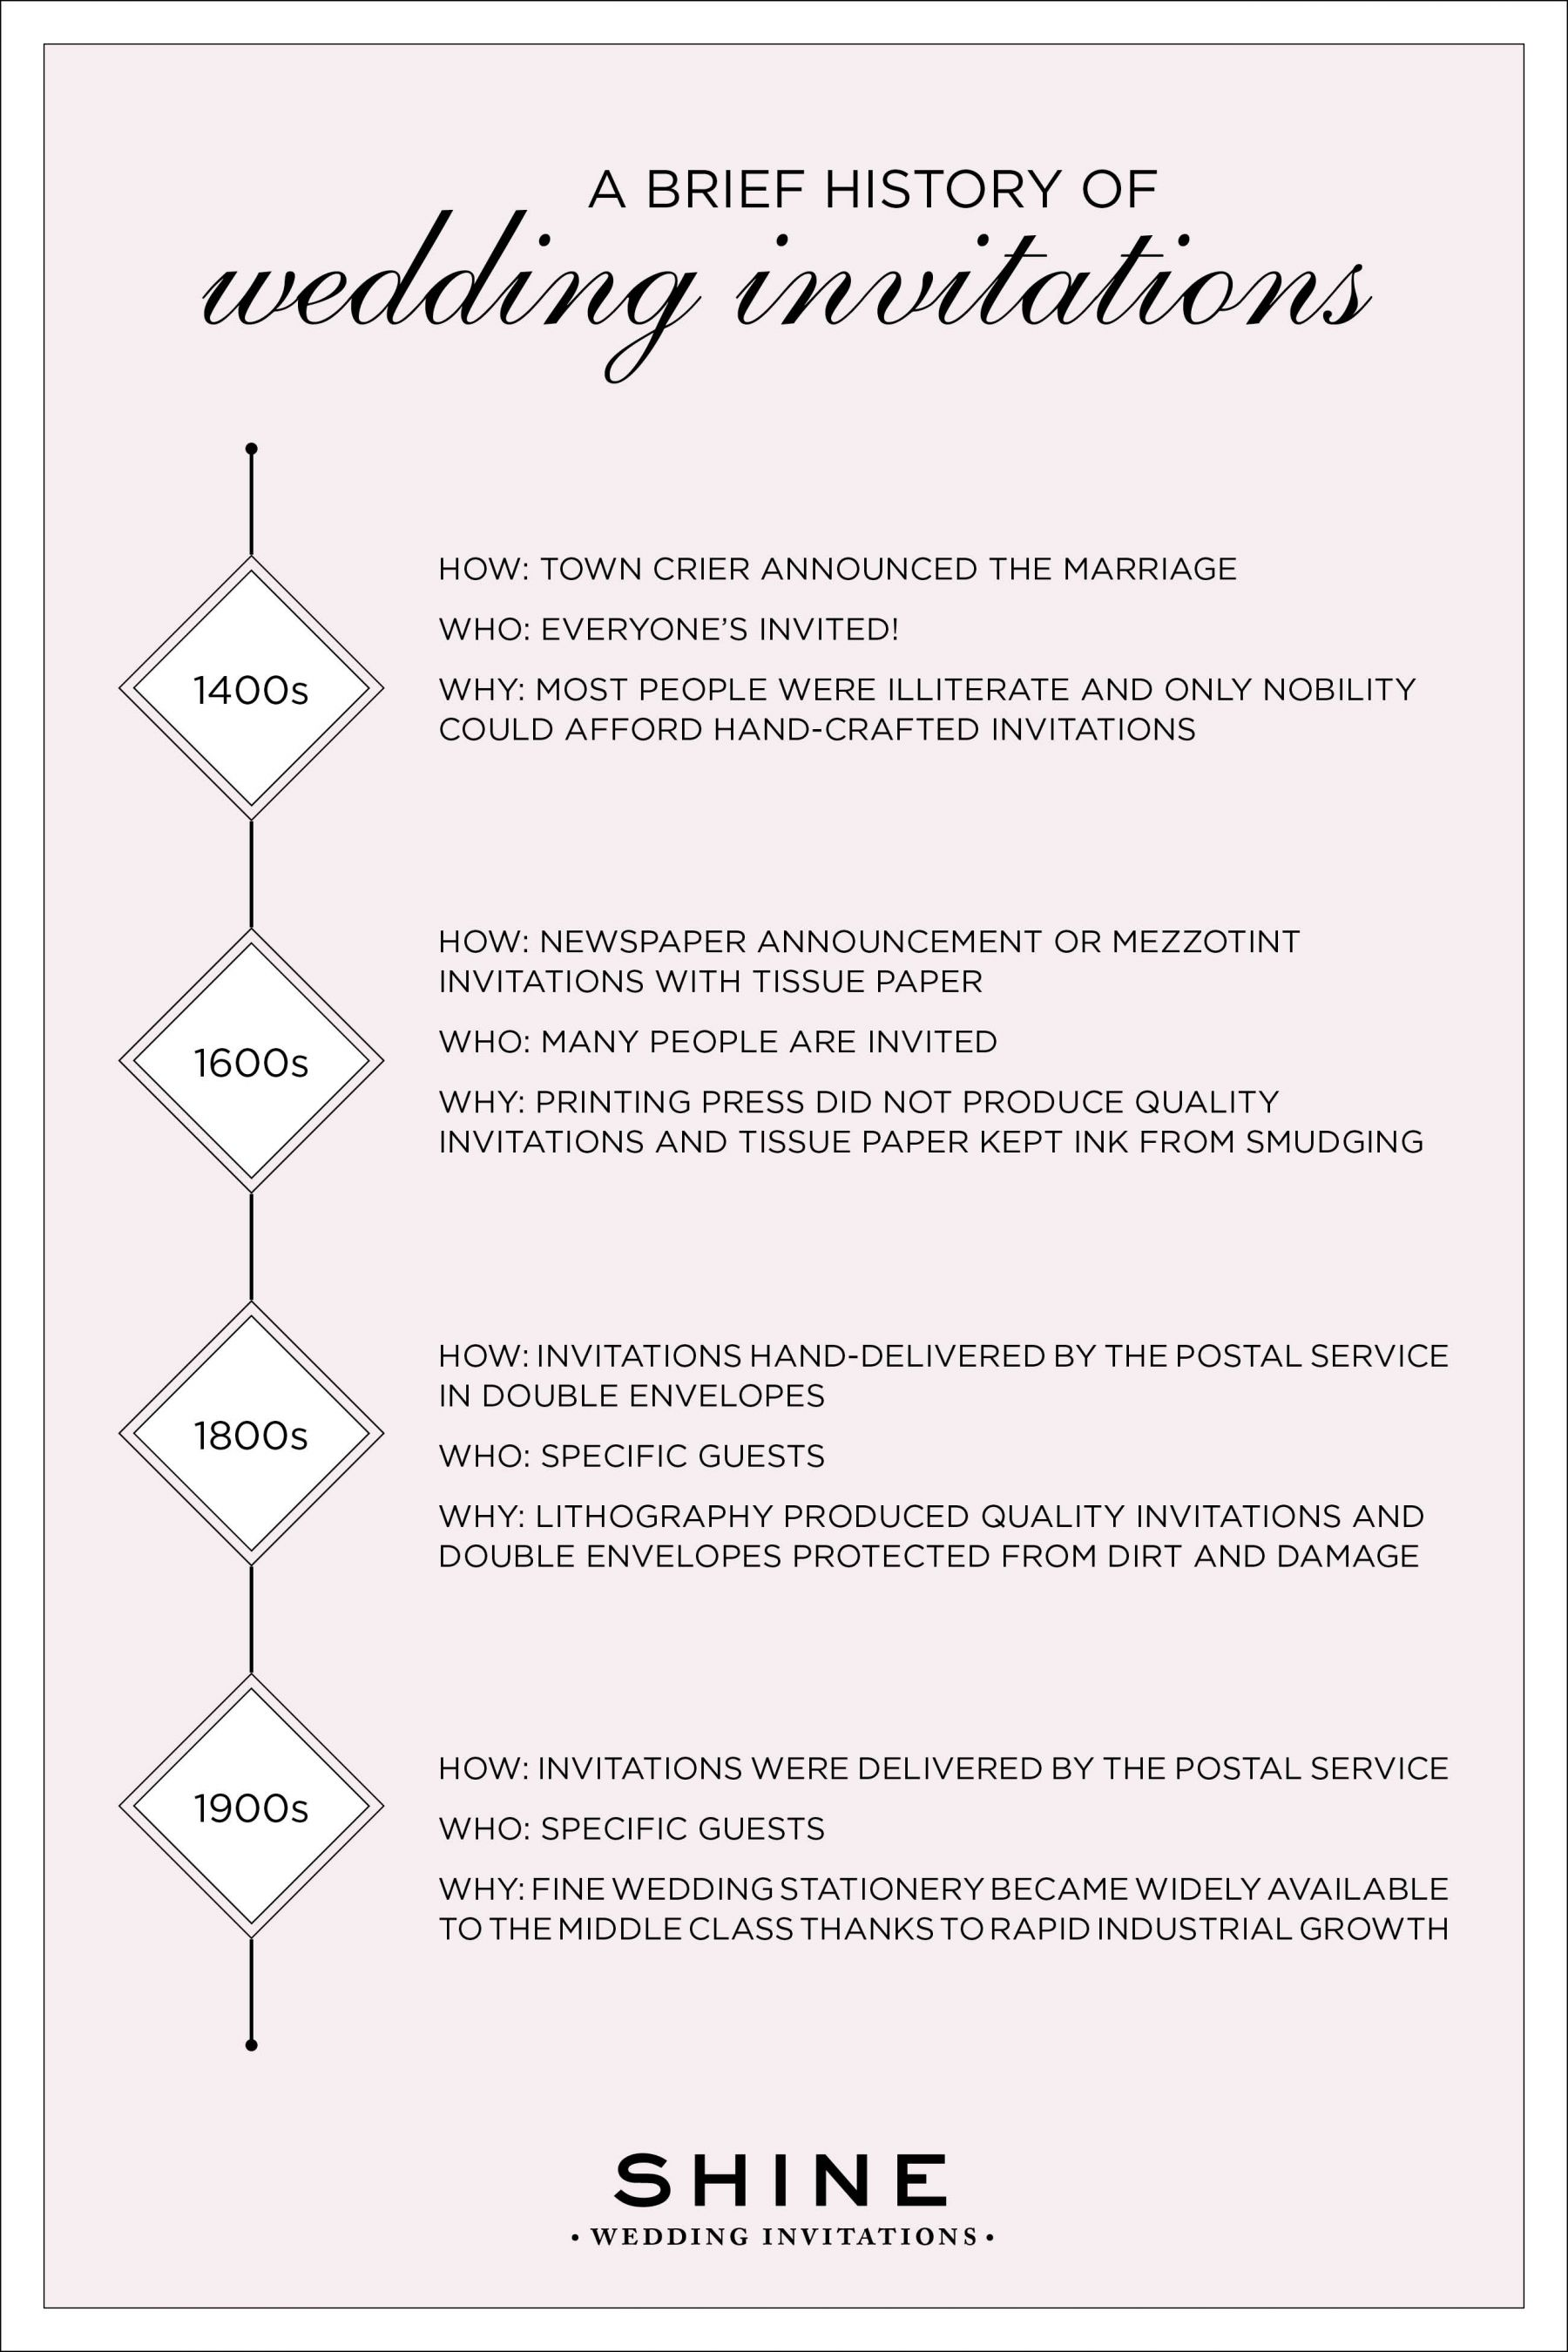 A Brief History Of Wedding Invitations